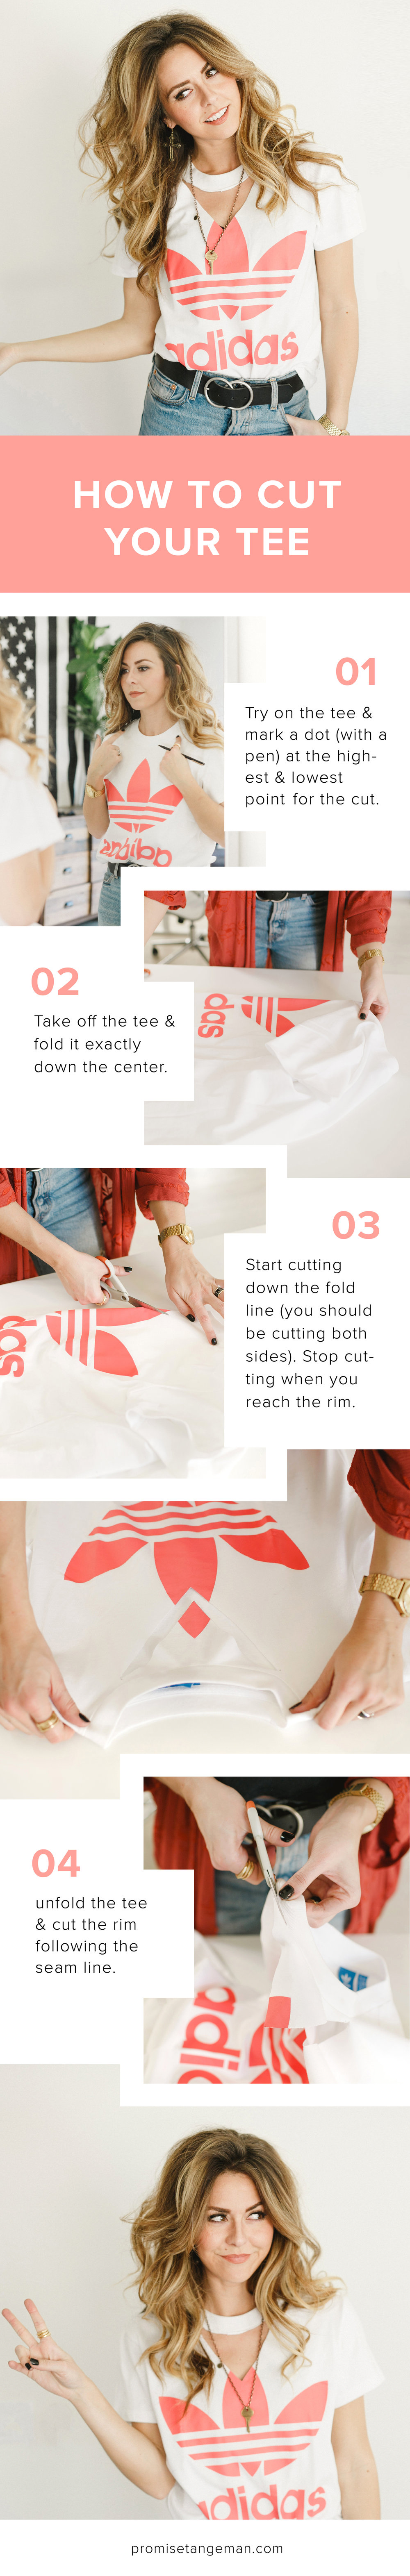 how to cut your t-shirt by Promise Tangeman